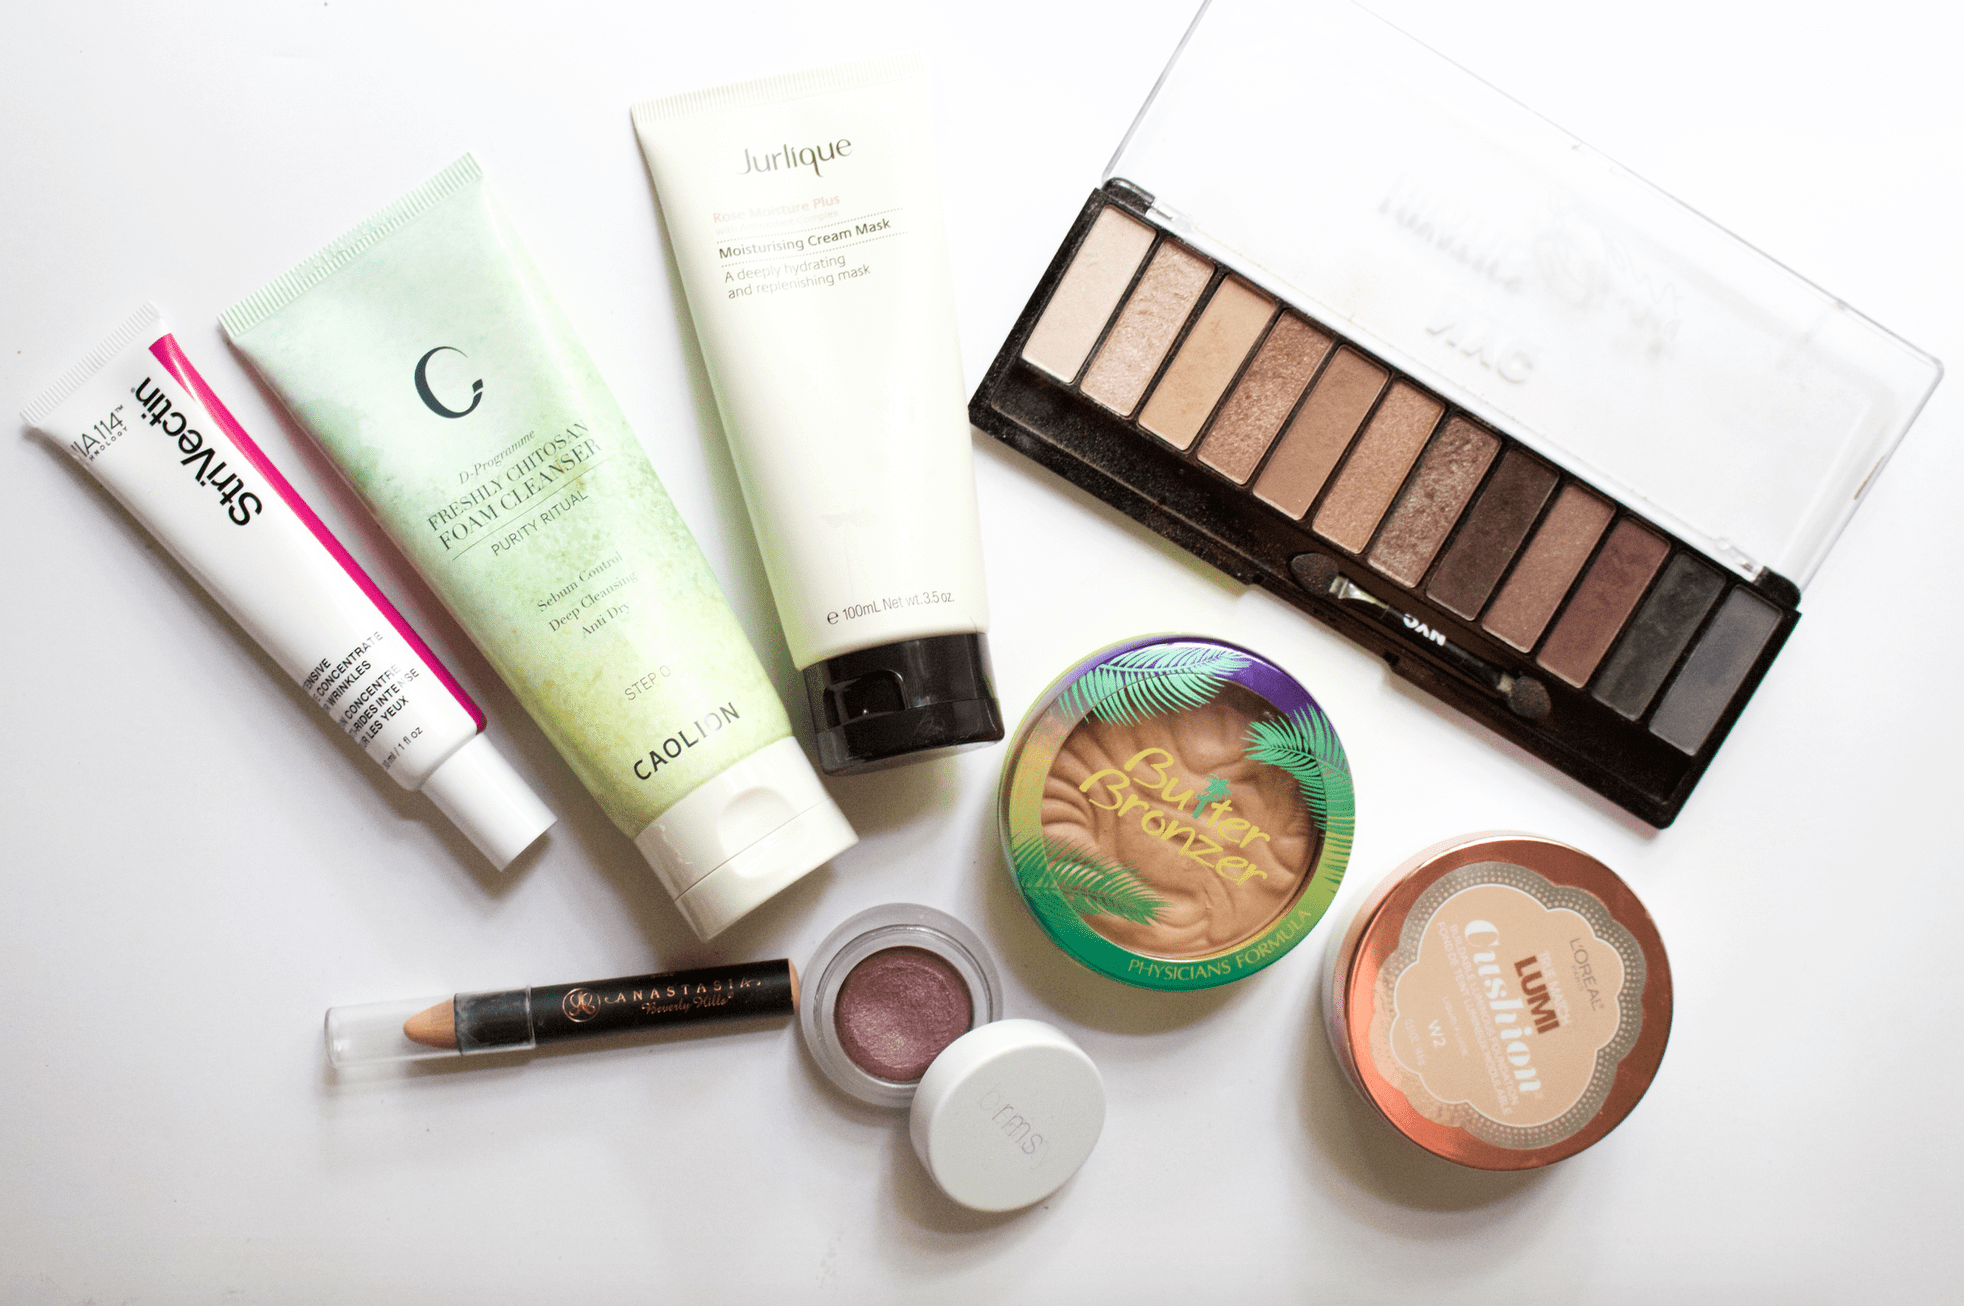 My picks for my May Favorites